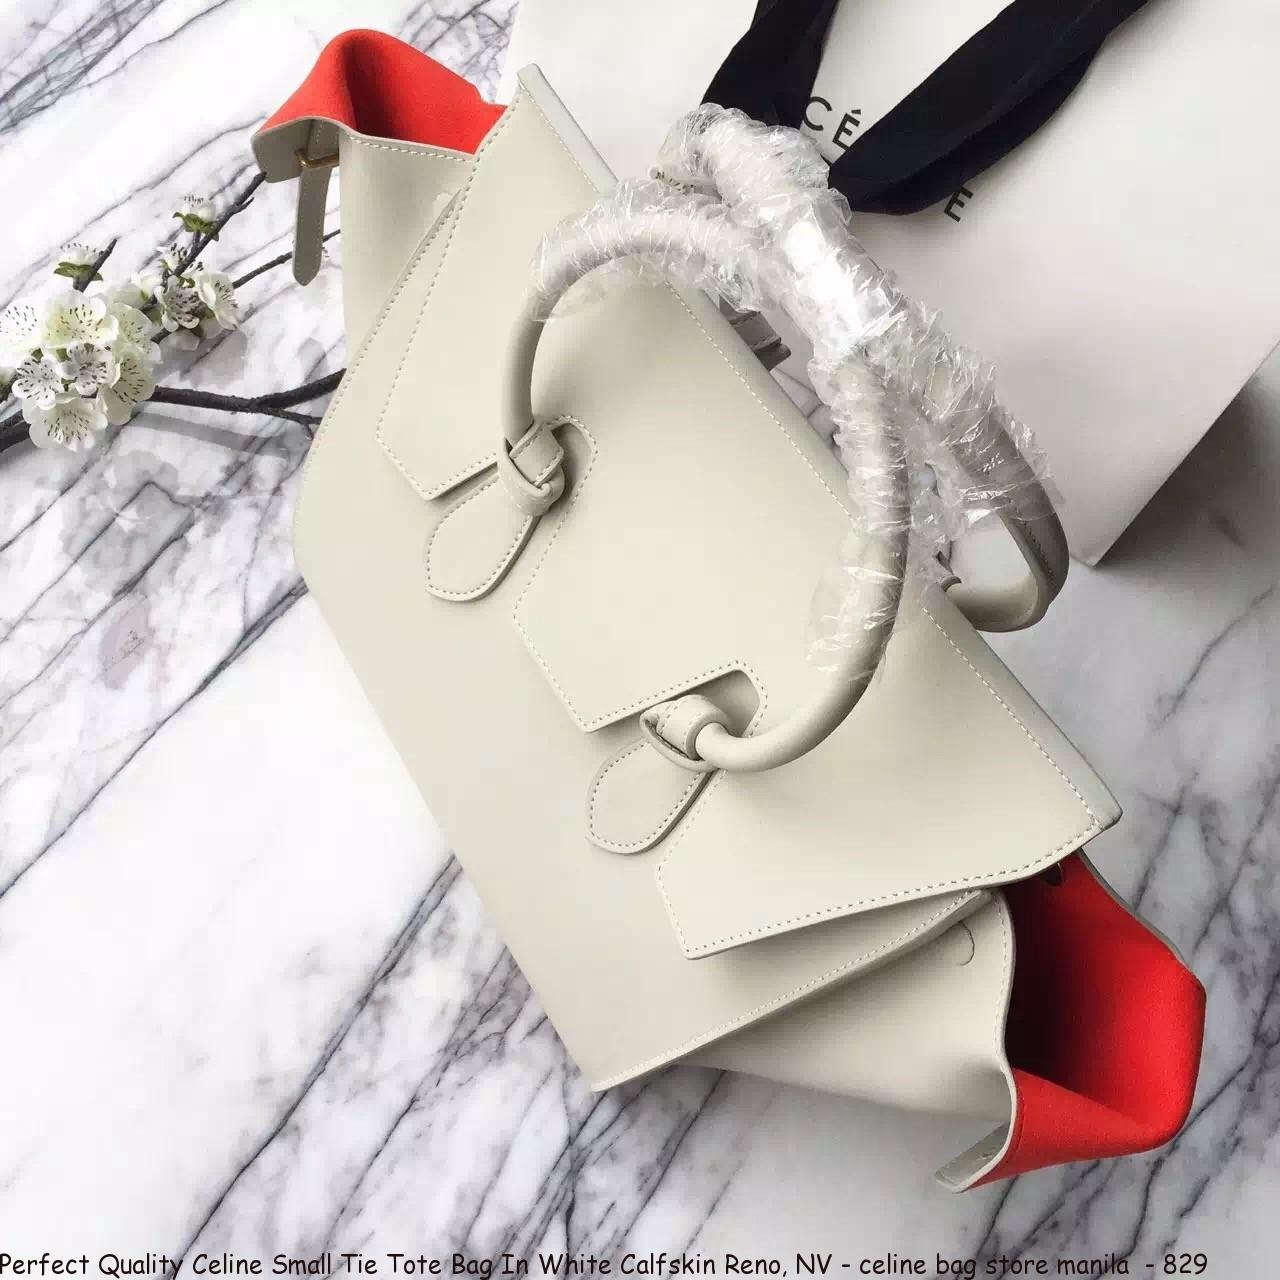 Perfect Quality Celine Small Tie Tote Bag In White Calfskin Reno b3d5d132a58f0